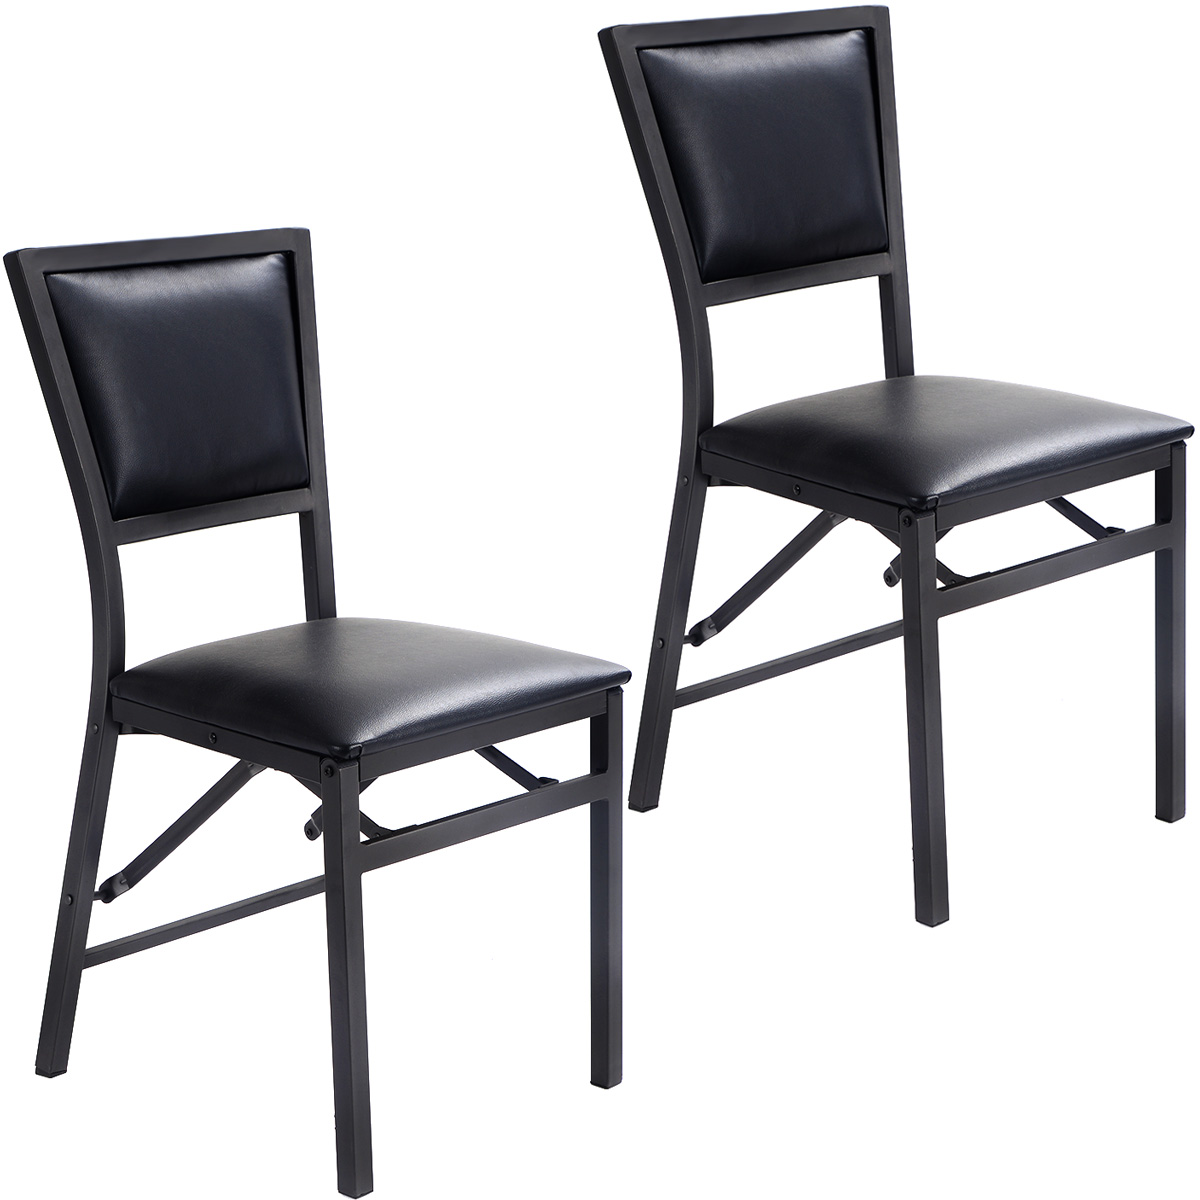 White Metal Folding Chairs costway set of 2 metal folding chair dining chairs home restaurant